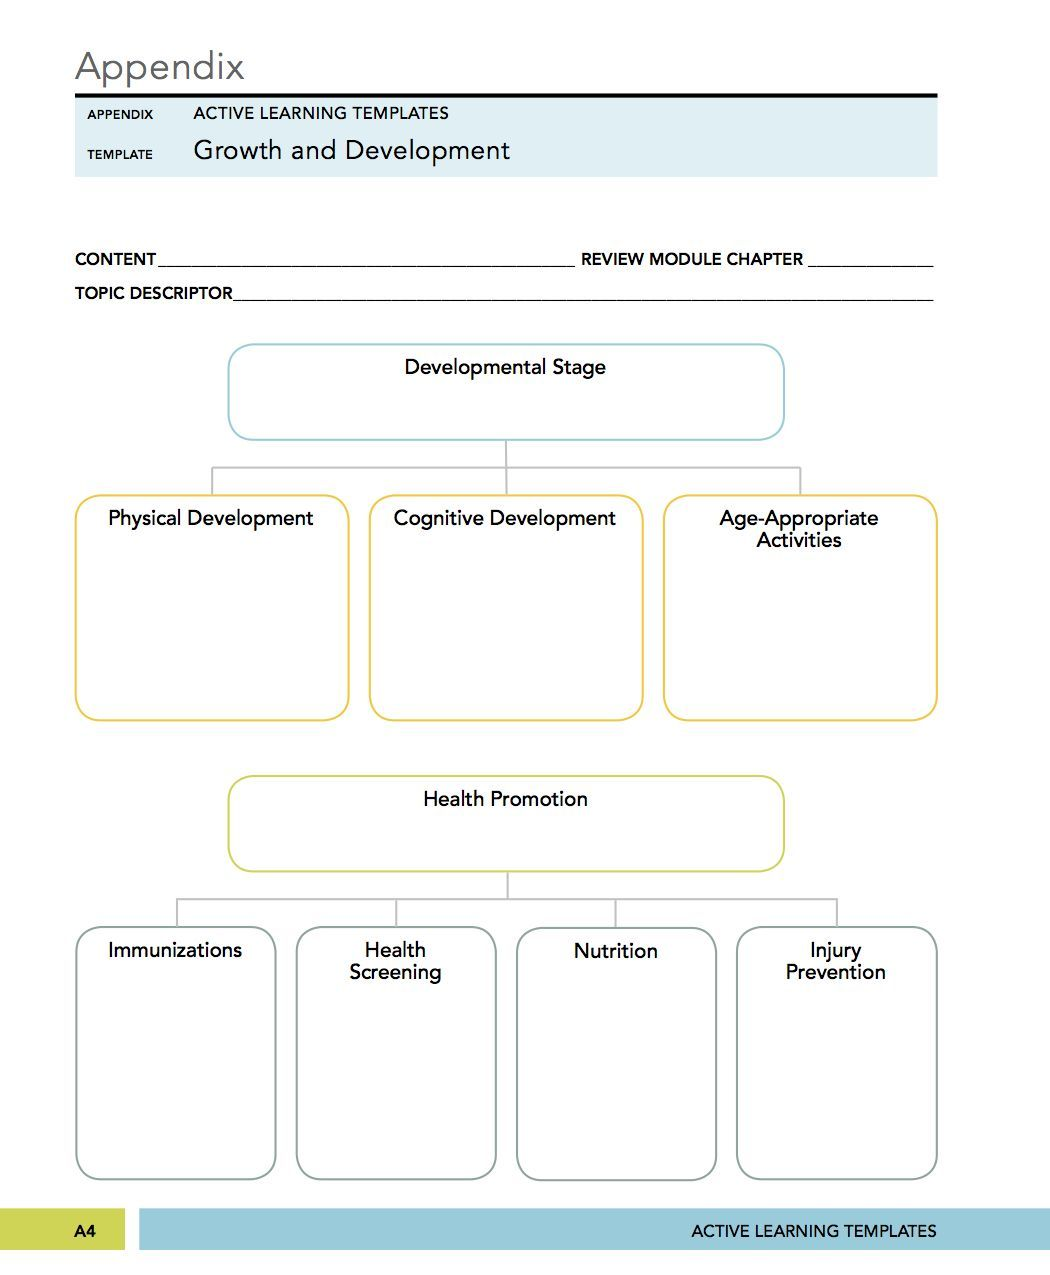 Ati System Disorder Template New Medical Surgical Mental Health Nursing Growth And Development